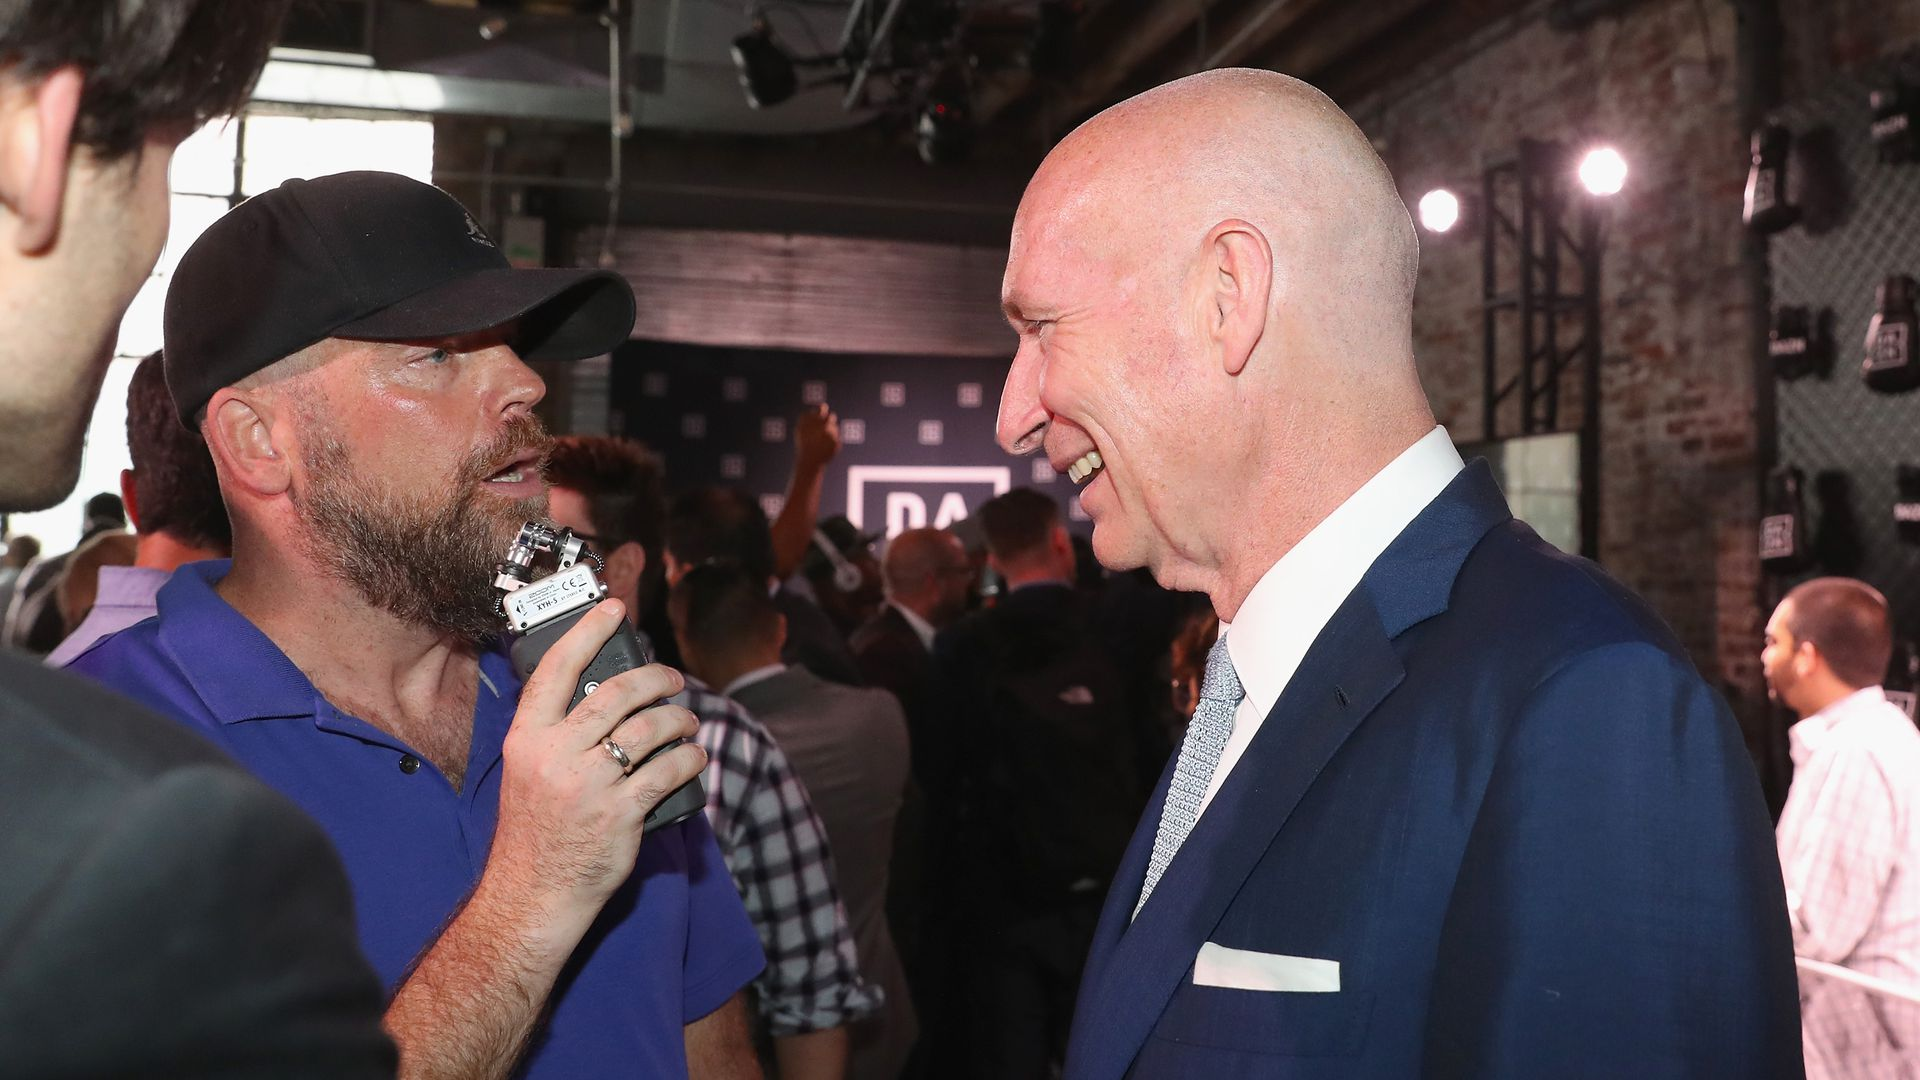 John Skipper is interviewed at the U.S. launch of DAZN. Photo: Johnny Nunez/Getty Images for DAZN.